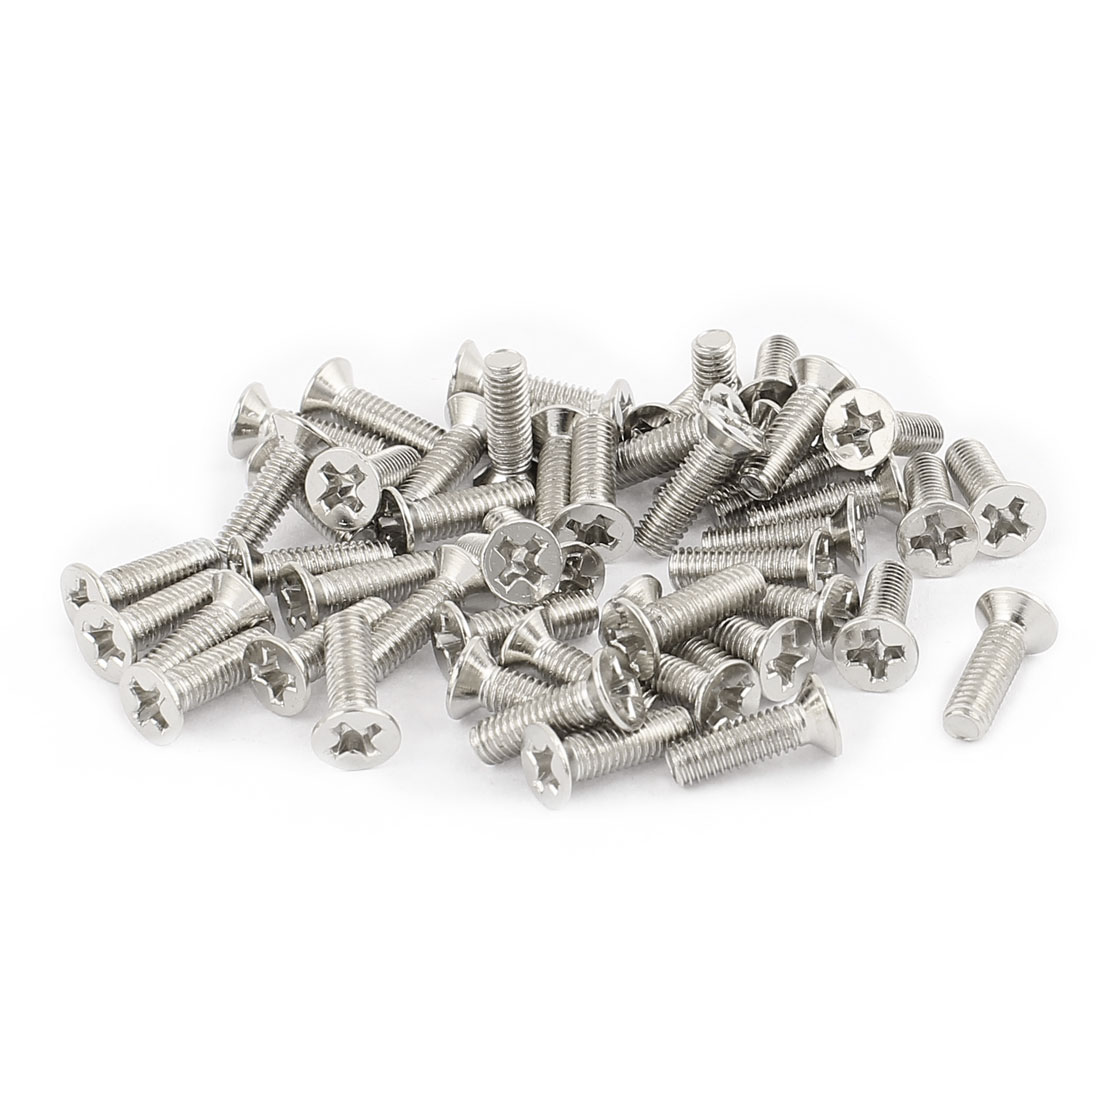 50 Pcs M3x10mm Stainless Steel Countersunk Flat Head Phillips Machine Screws Bolts